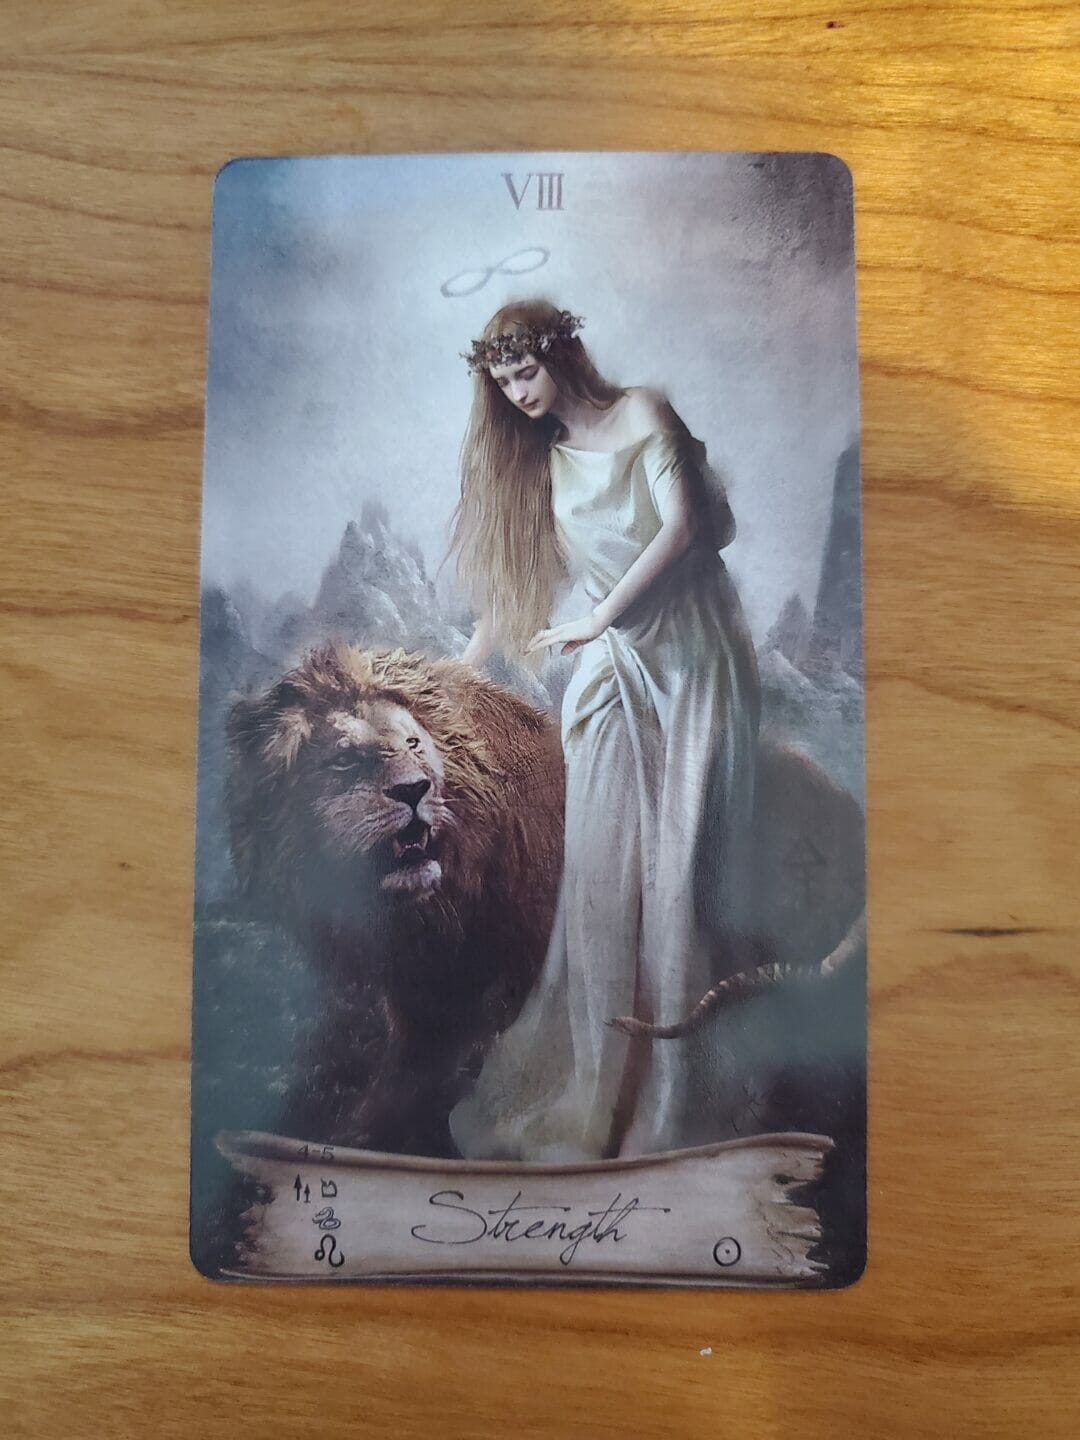 The Lion as Laziness in the Strength Card